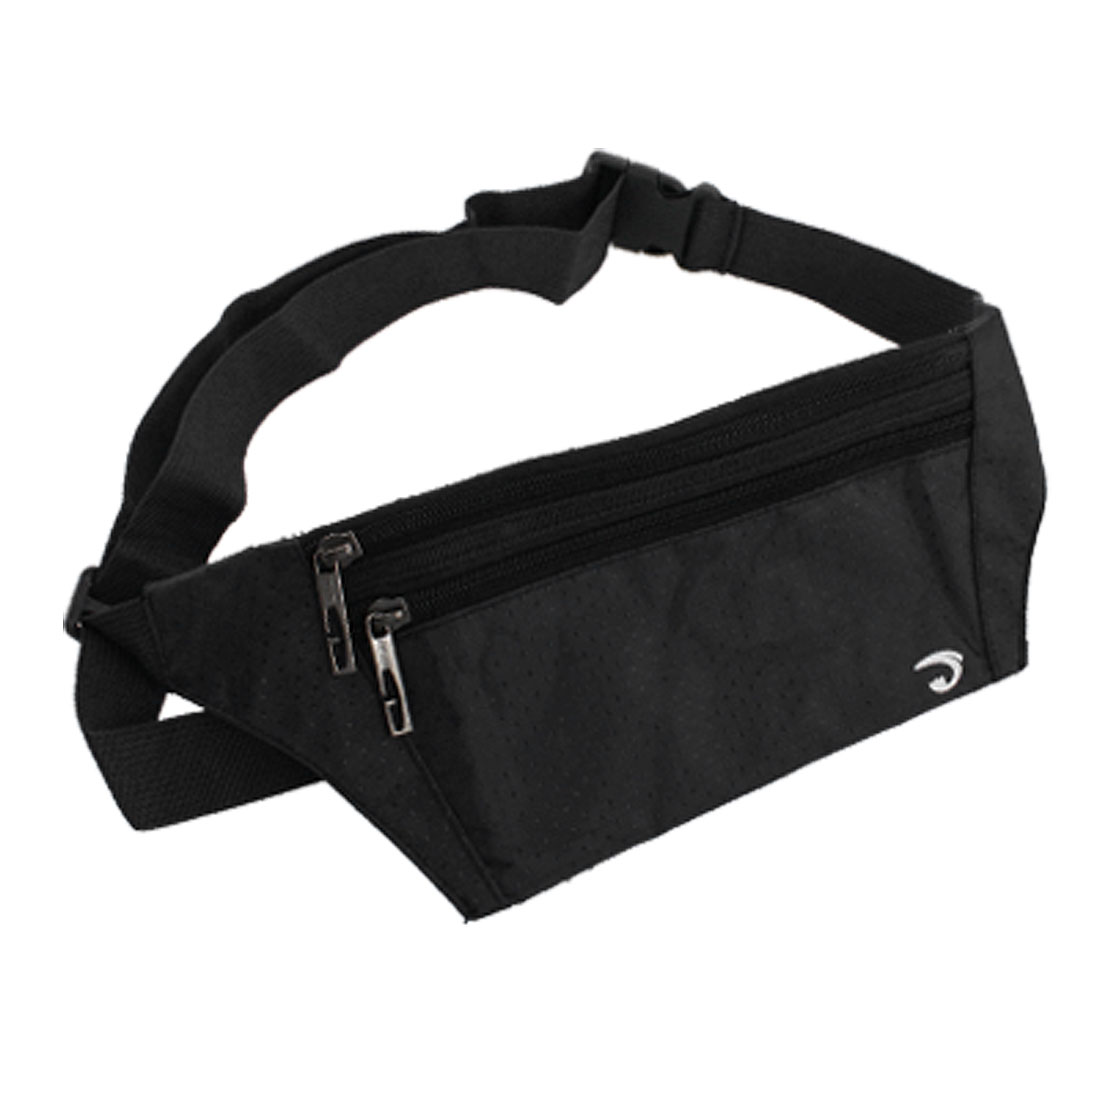 Black Argyle Print 3 Zipper Pockets Nylon Waist Bag Pouch for Man